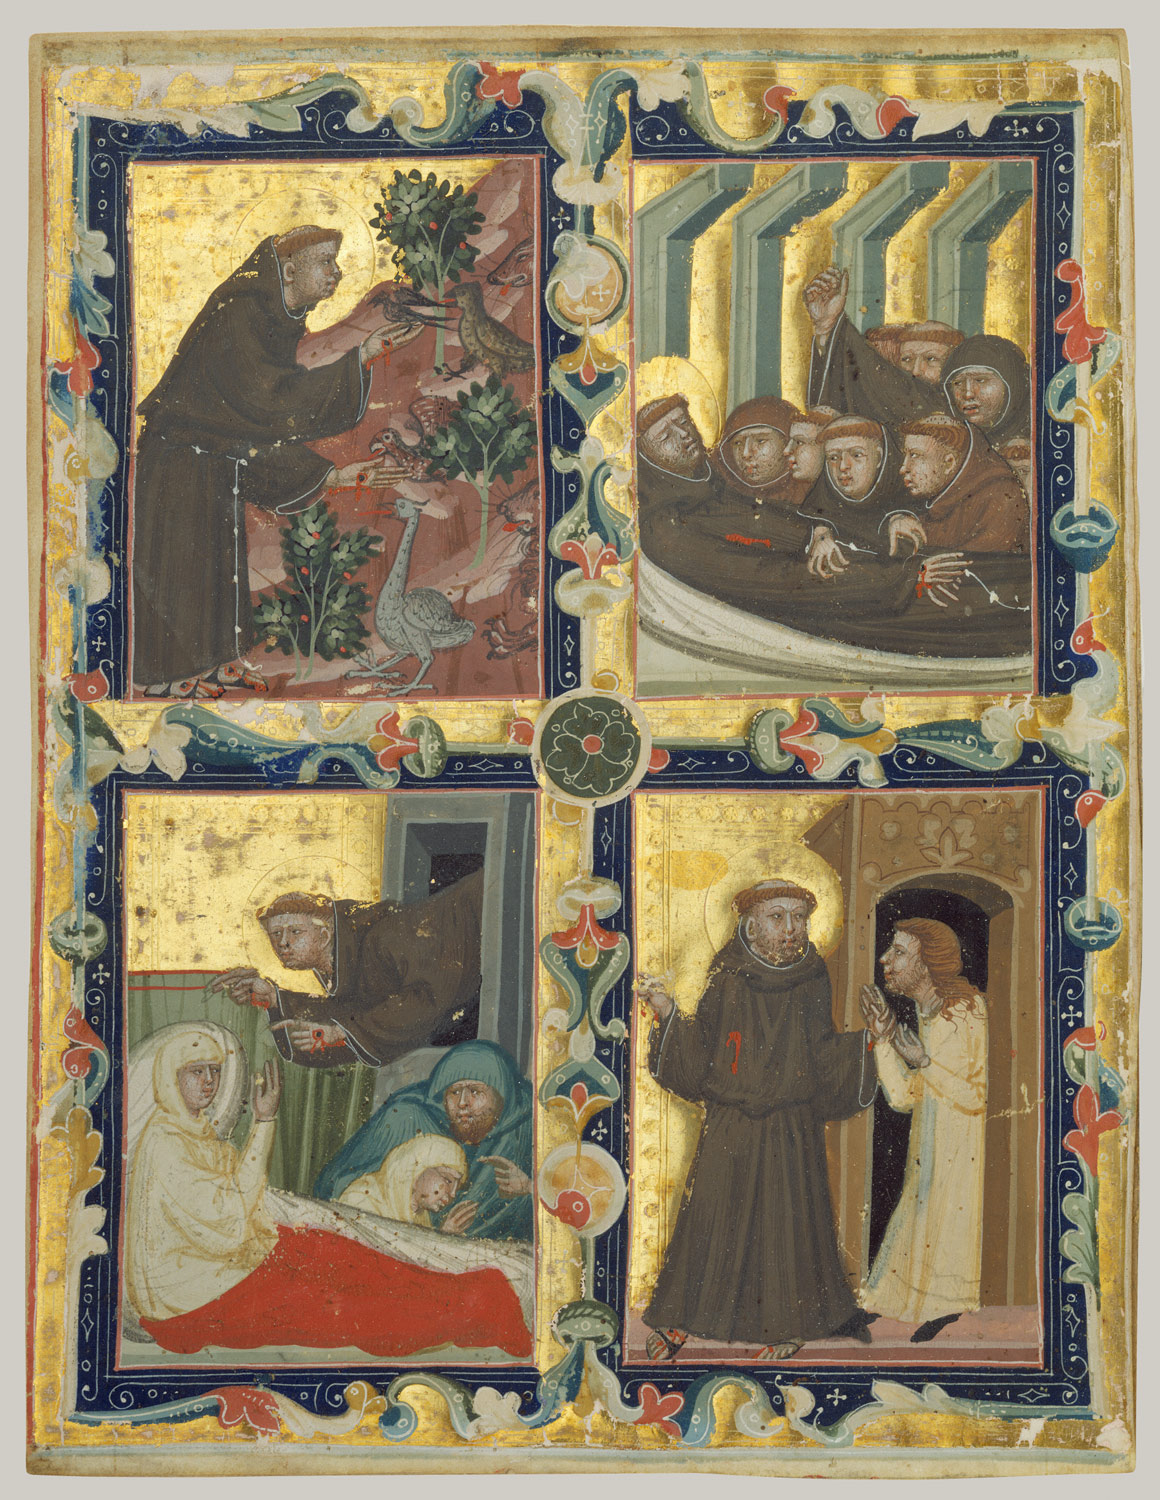 ... Manuscript Leaf with Scenes from the Life of Saint Francis of Assisi ...